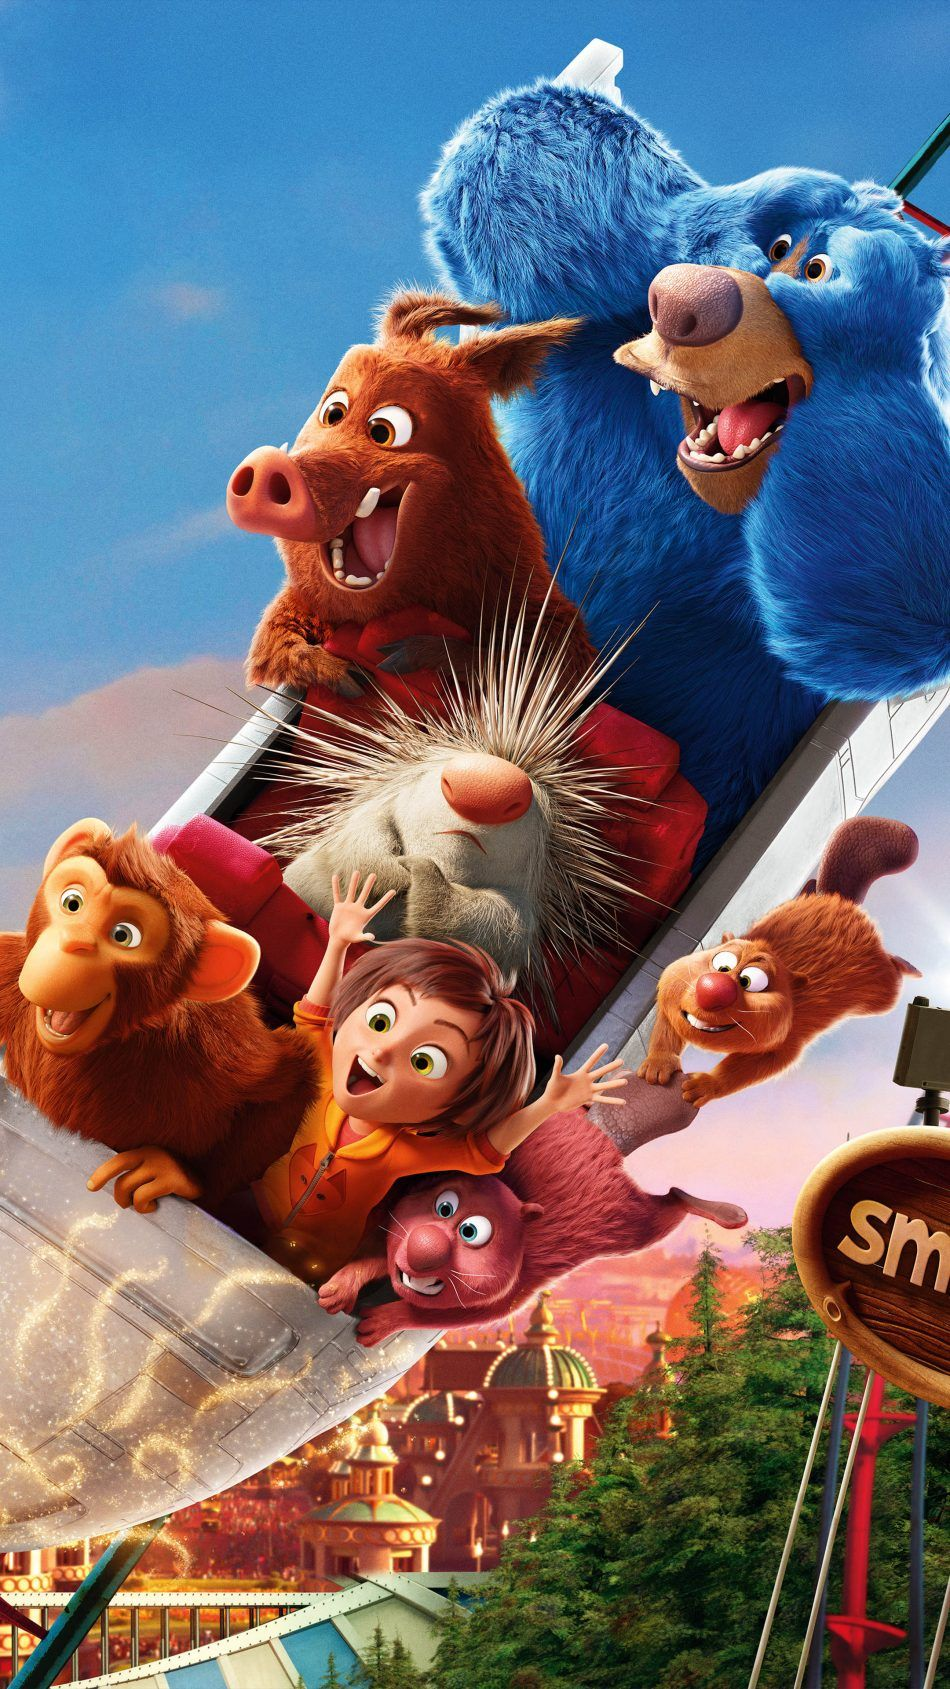 Wonder Park Animation 2019 Adventure Comedy Adventure